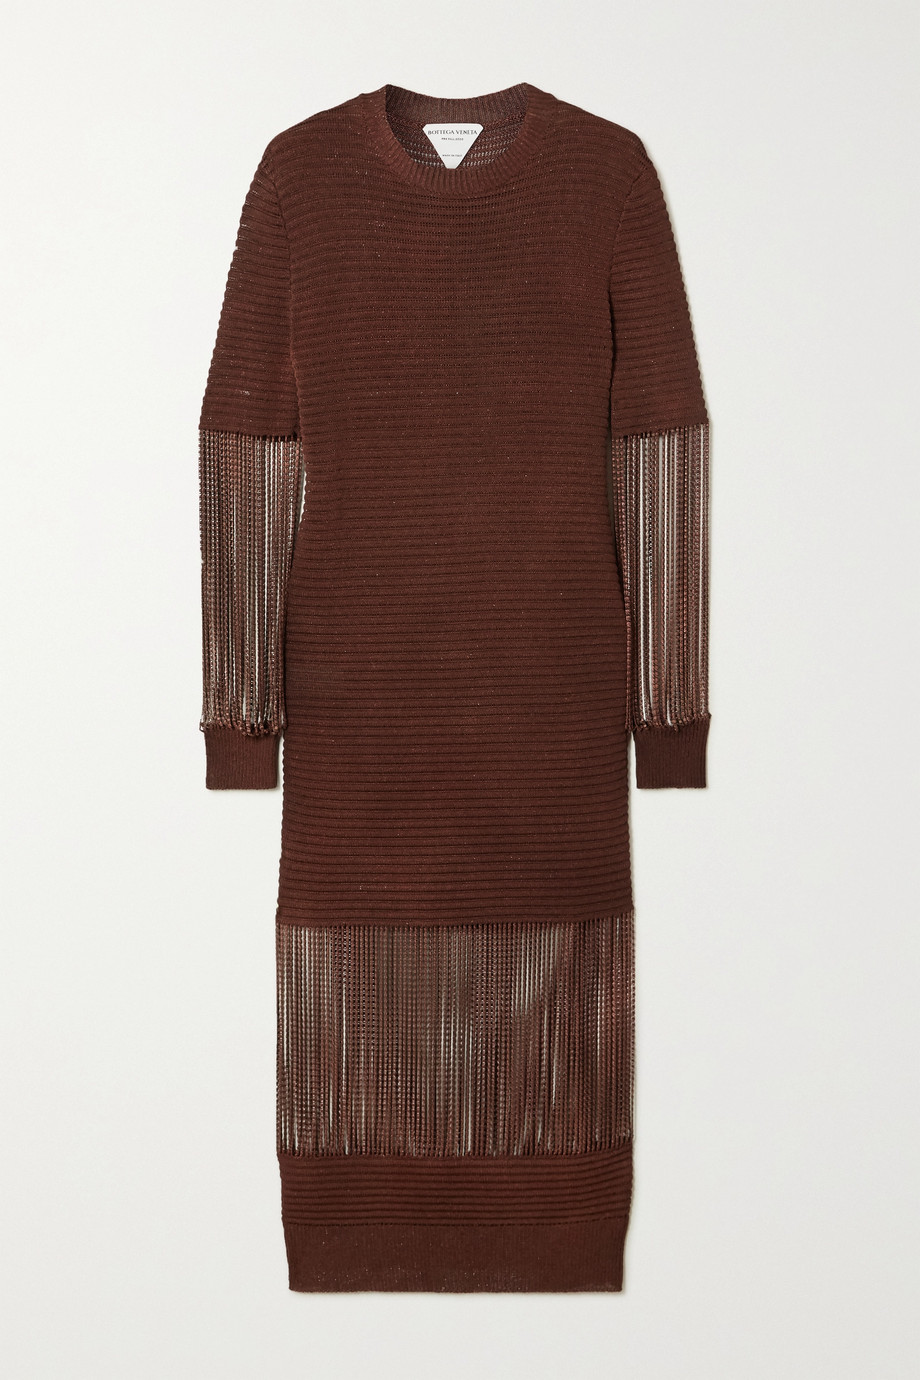 Bottega Veneta Chain-embellished metallic crochet-knit midi dress